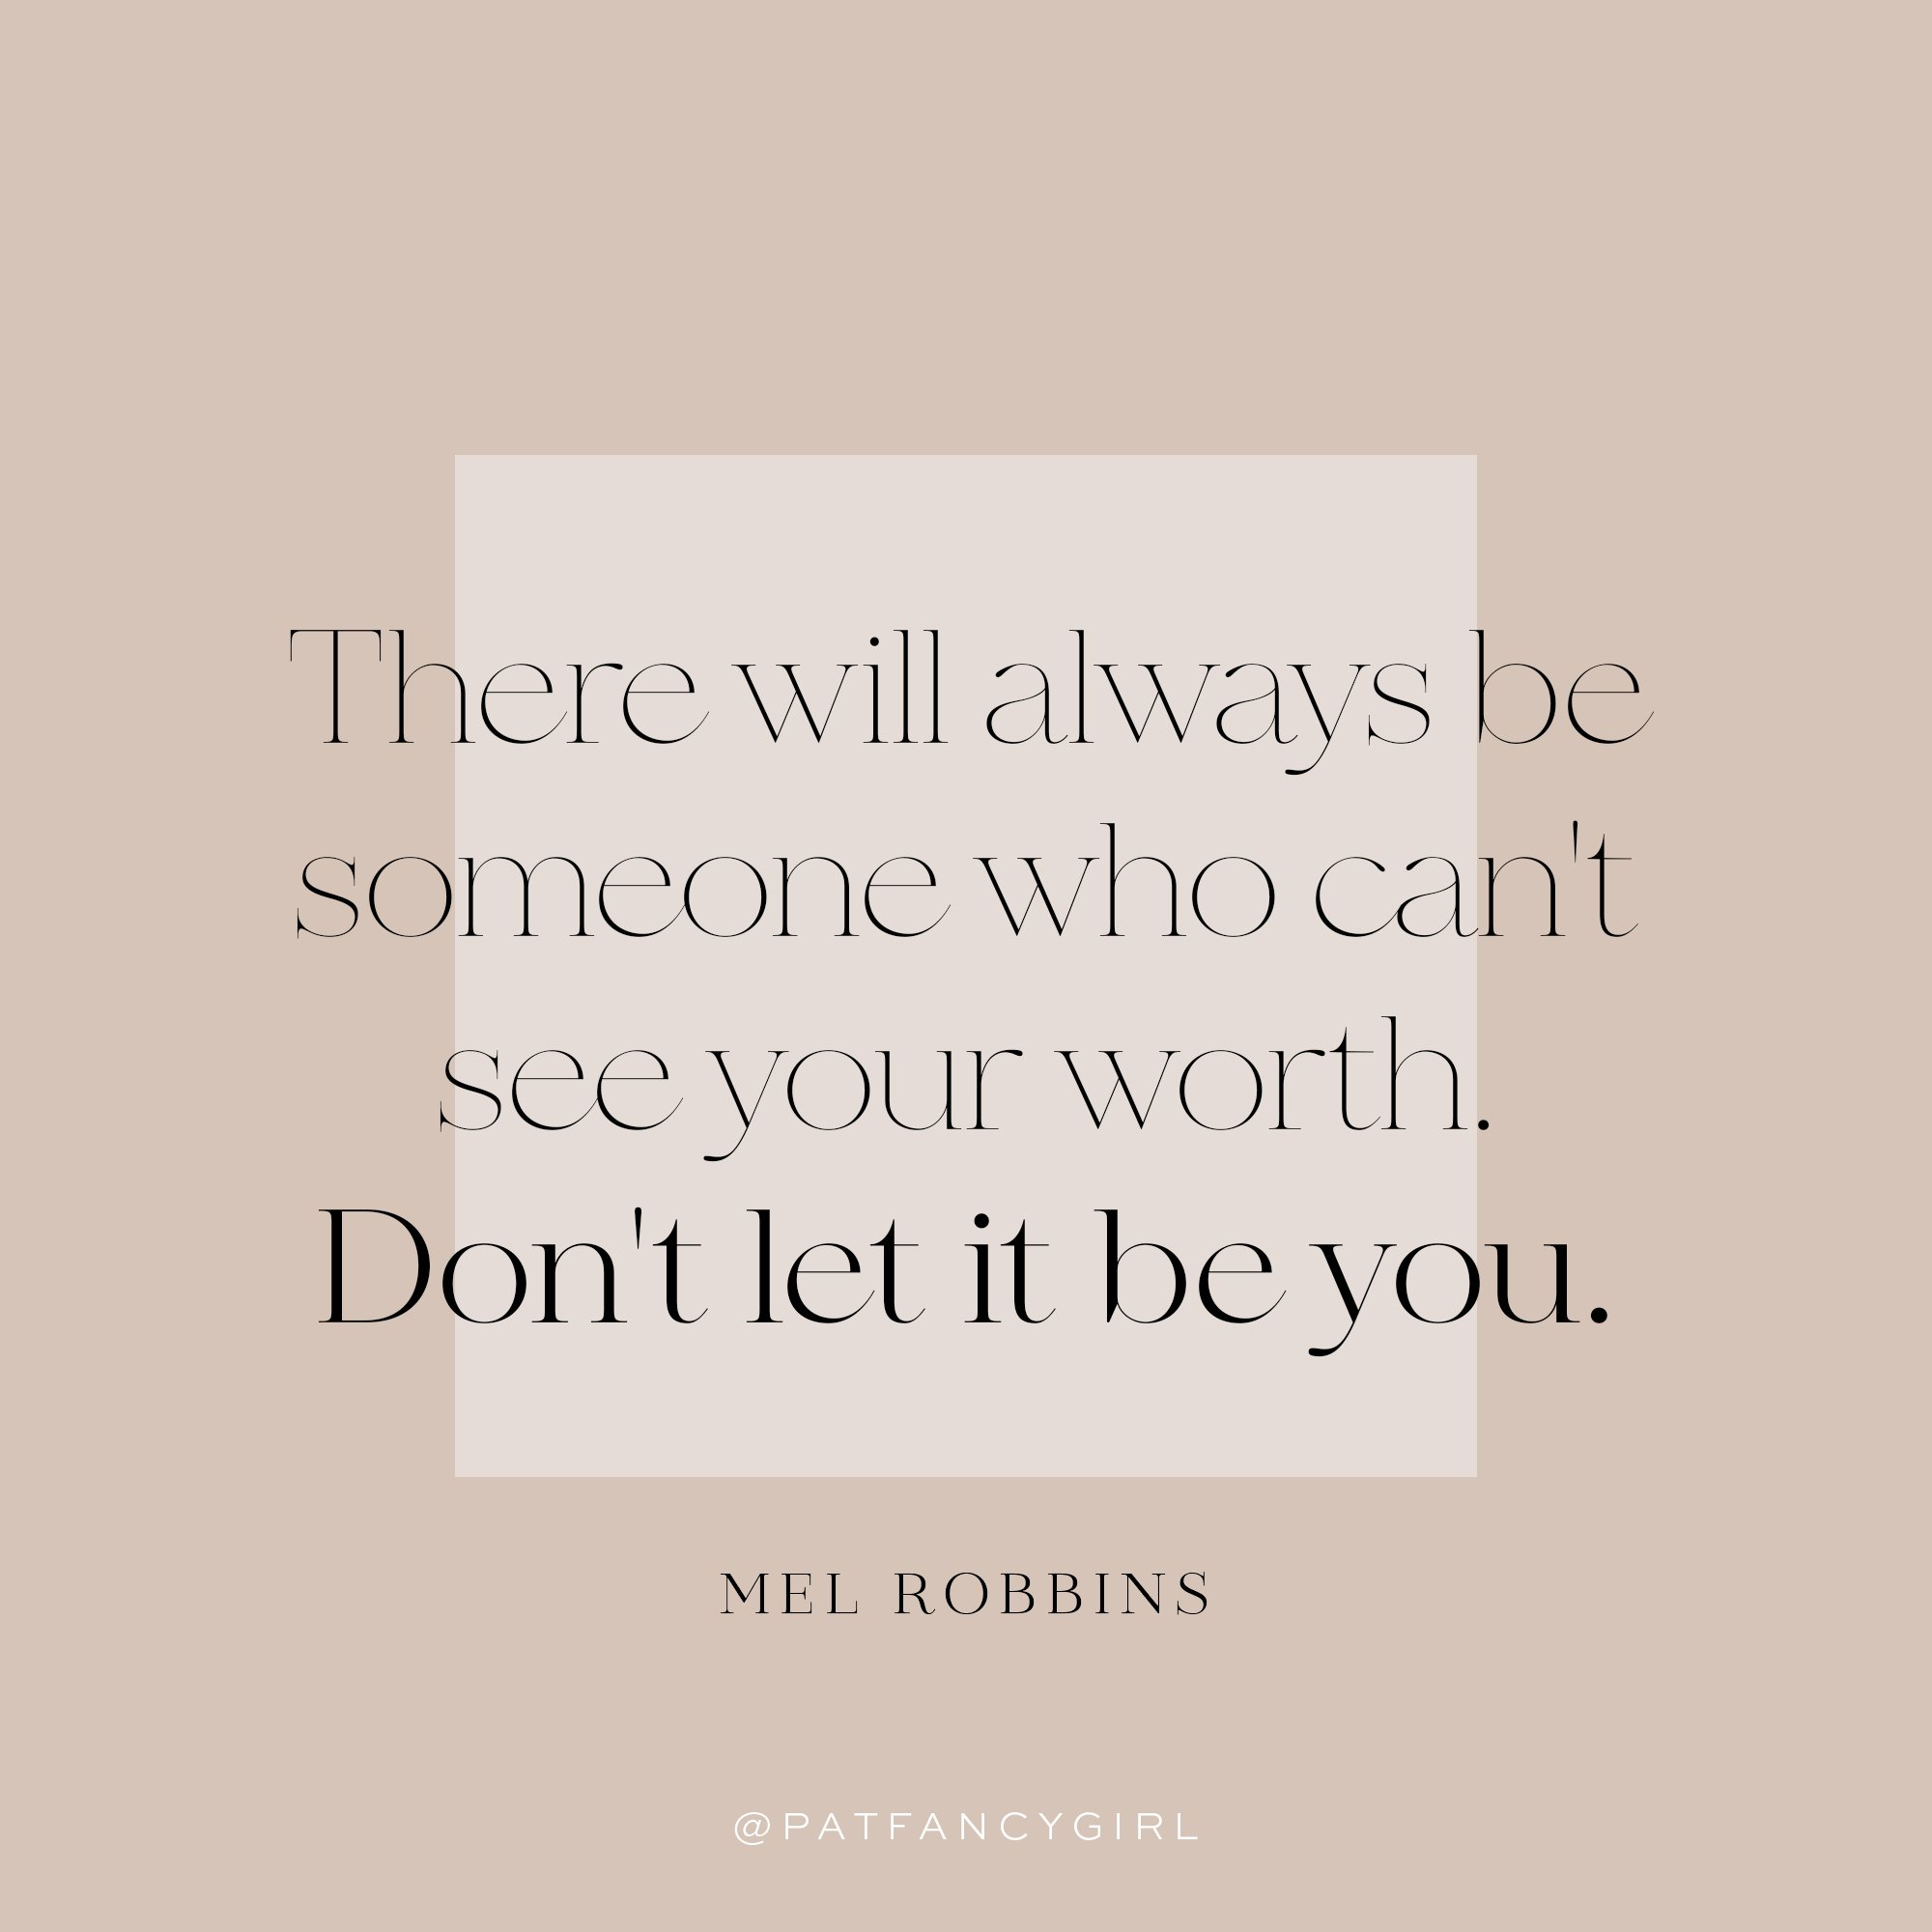 Mel Robbins quote - There will always be someone who can't see your worth. Don't let it be you.